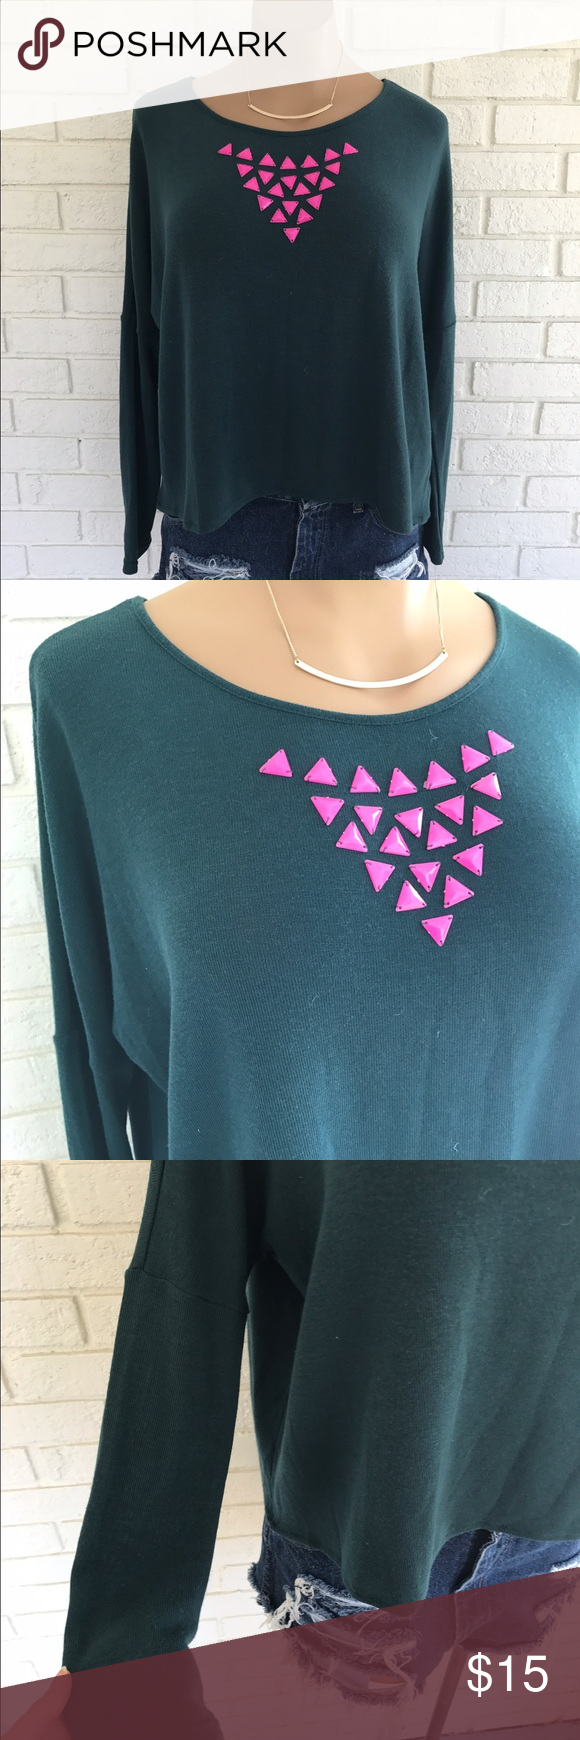 NWT teal green and pink jeweled top NWT. Teal green soft long sleeve flowy top with a pink triangle jeweled neckline. Round neckline. Slightly cropped length. Sleeves are fitted. Size medium by very j. Very J Tops Blouses